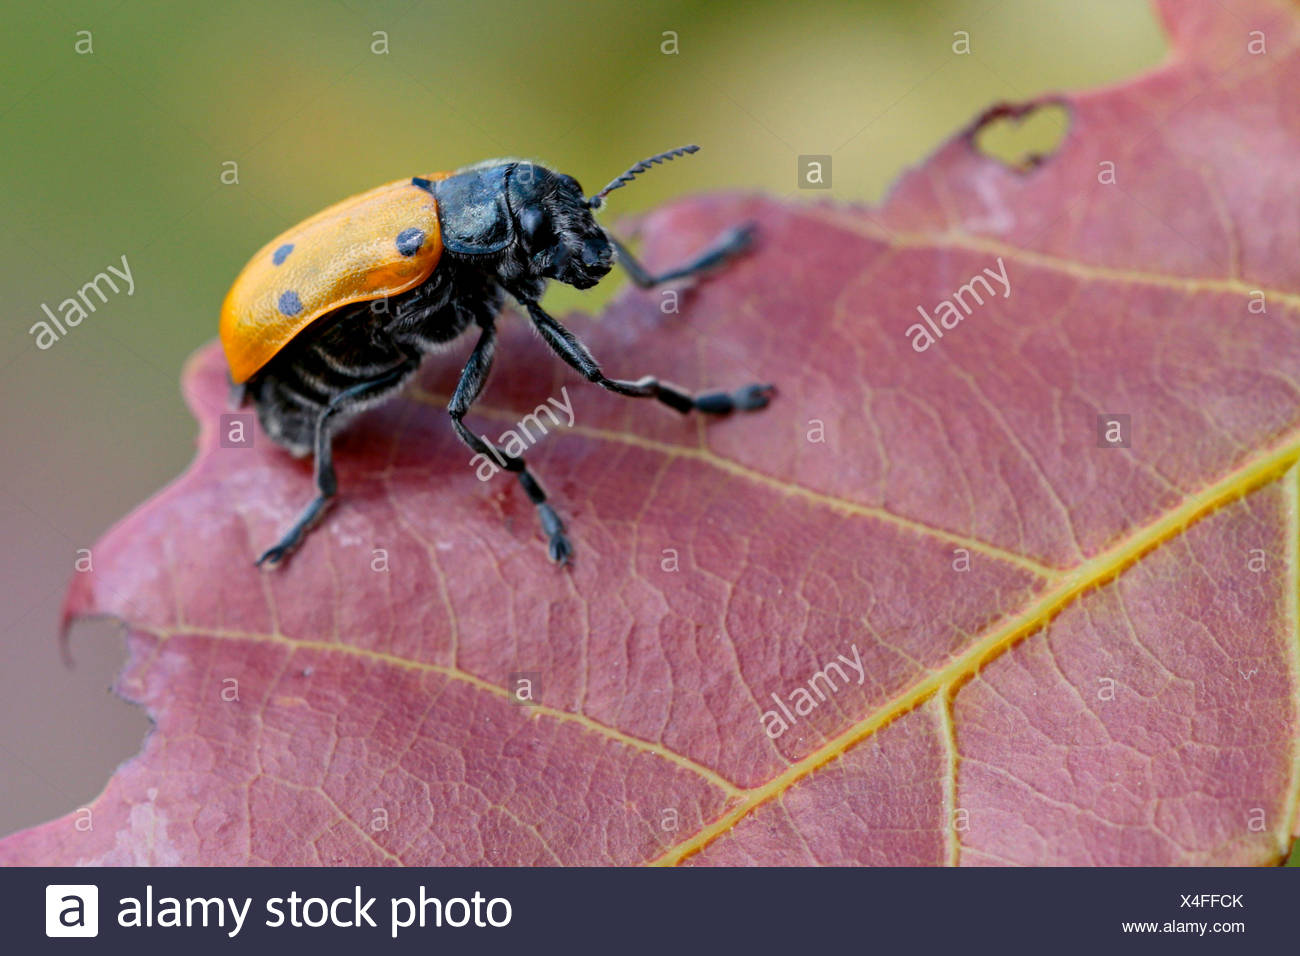 Leaf beetle (Lachnaia sexpunctata), on a leaf, Germany - Stock Image